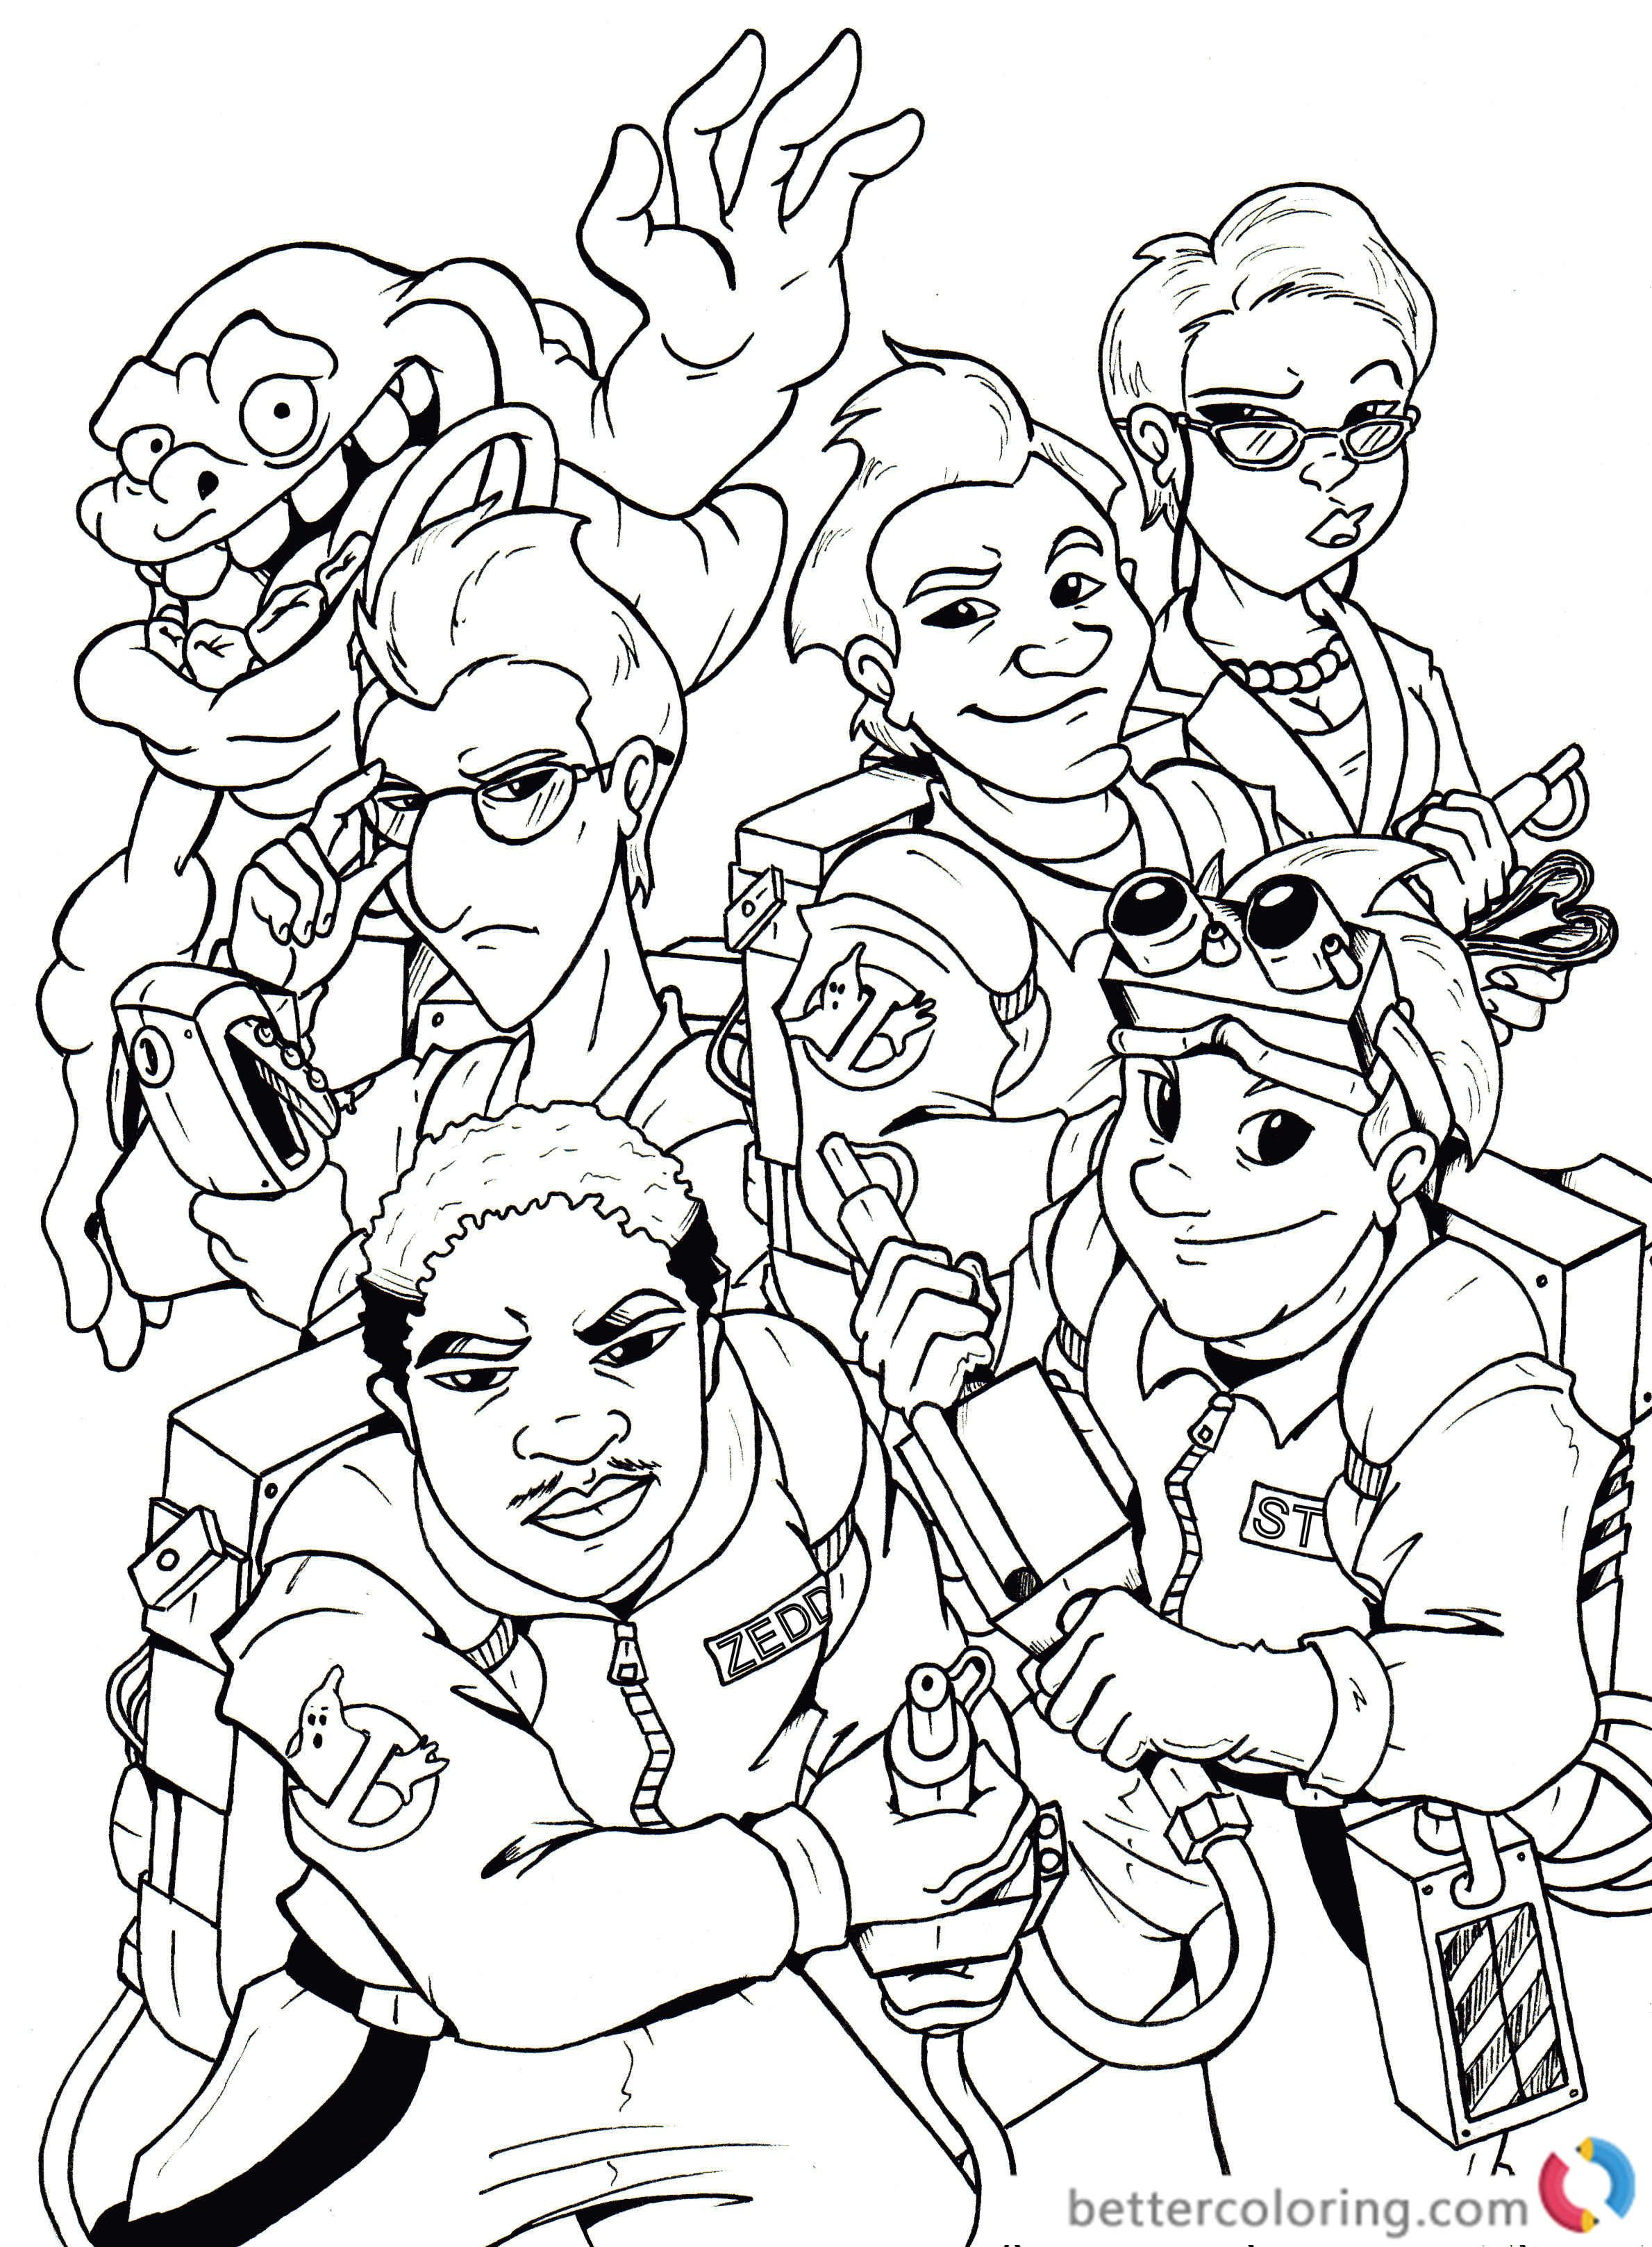 Free Ghostbusters Coloring Pages For Kids And Adults Coloring